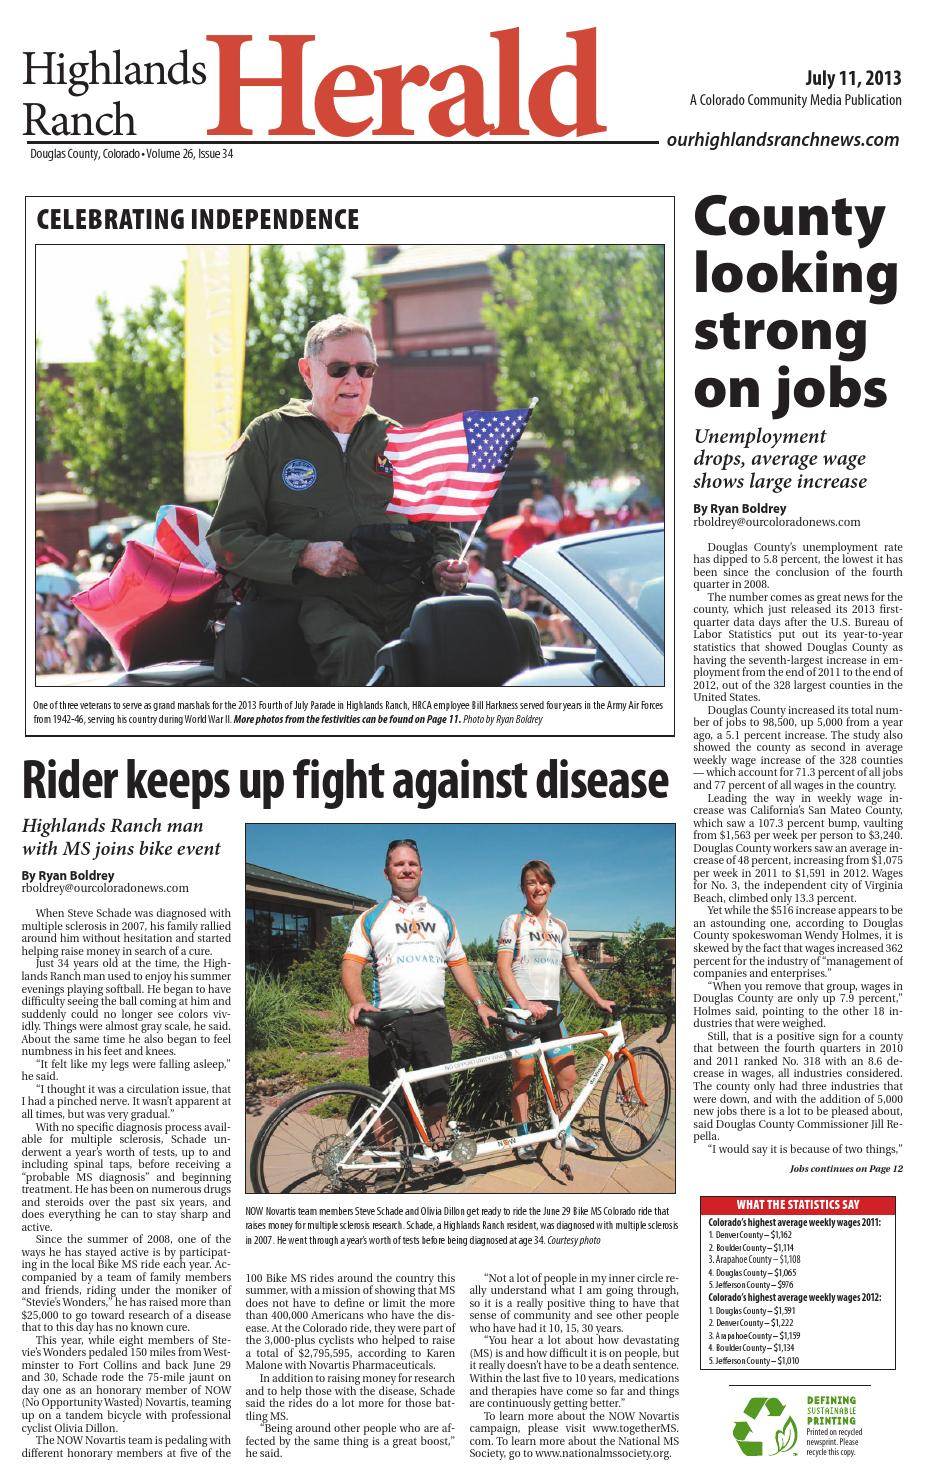 Highlands ranch herald 0711 by Colorado Community Media - issuu